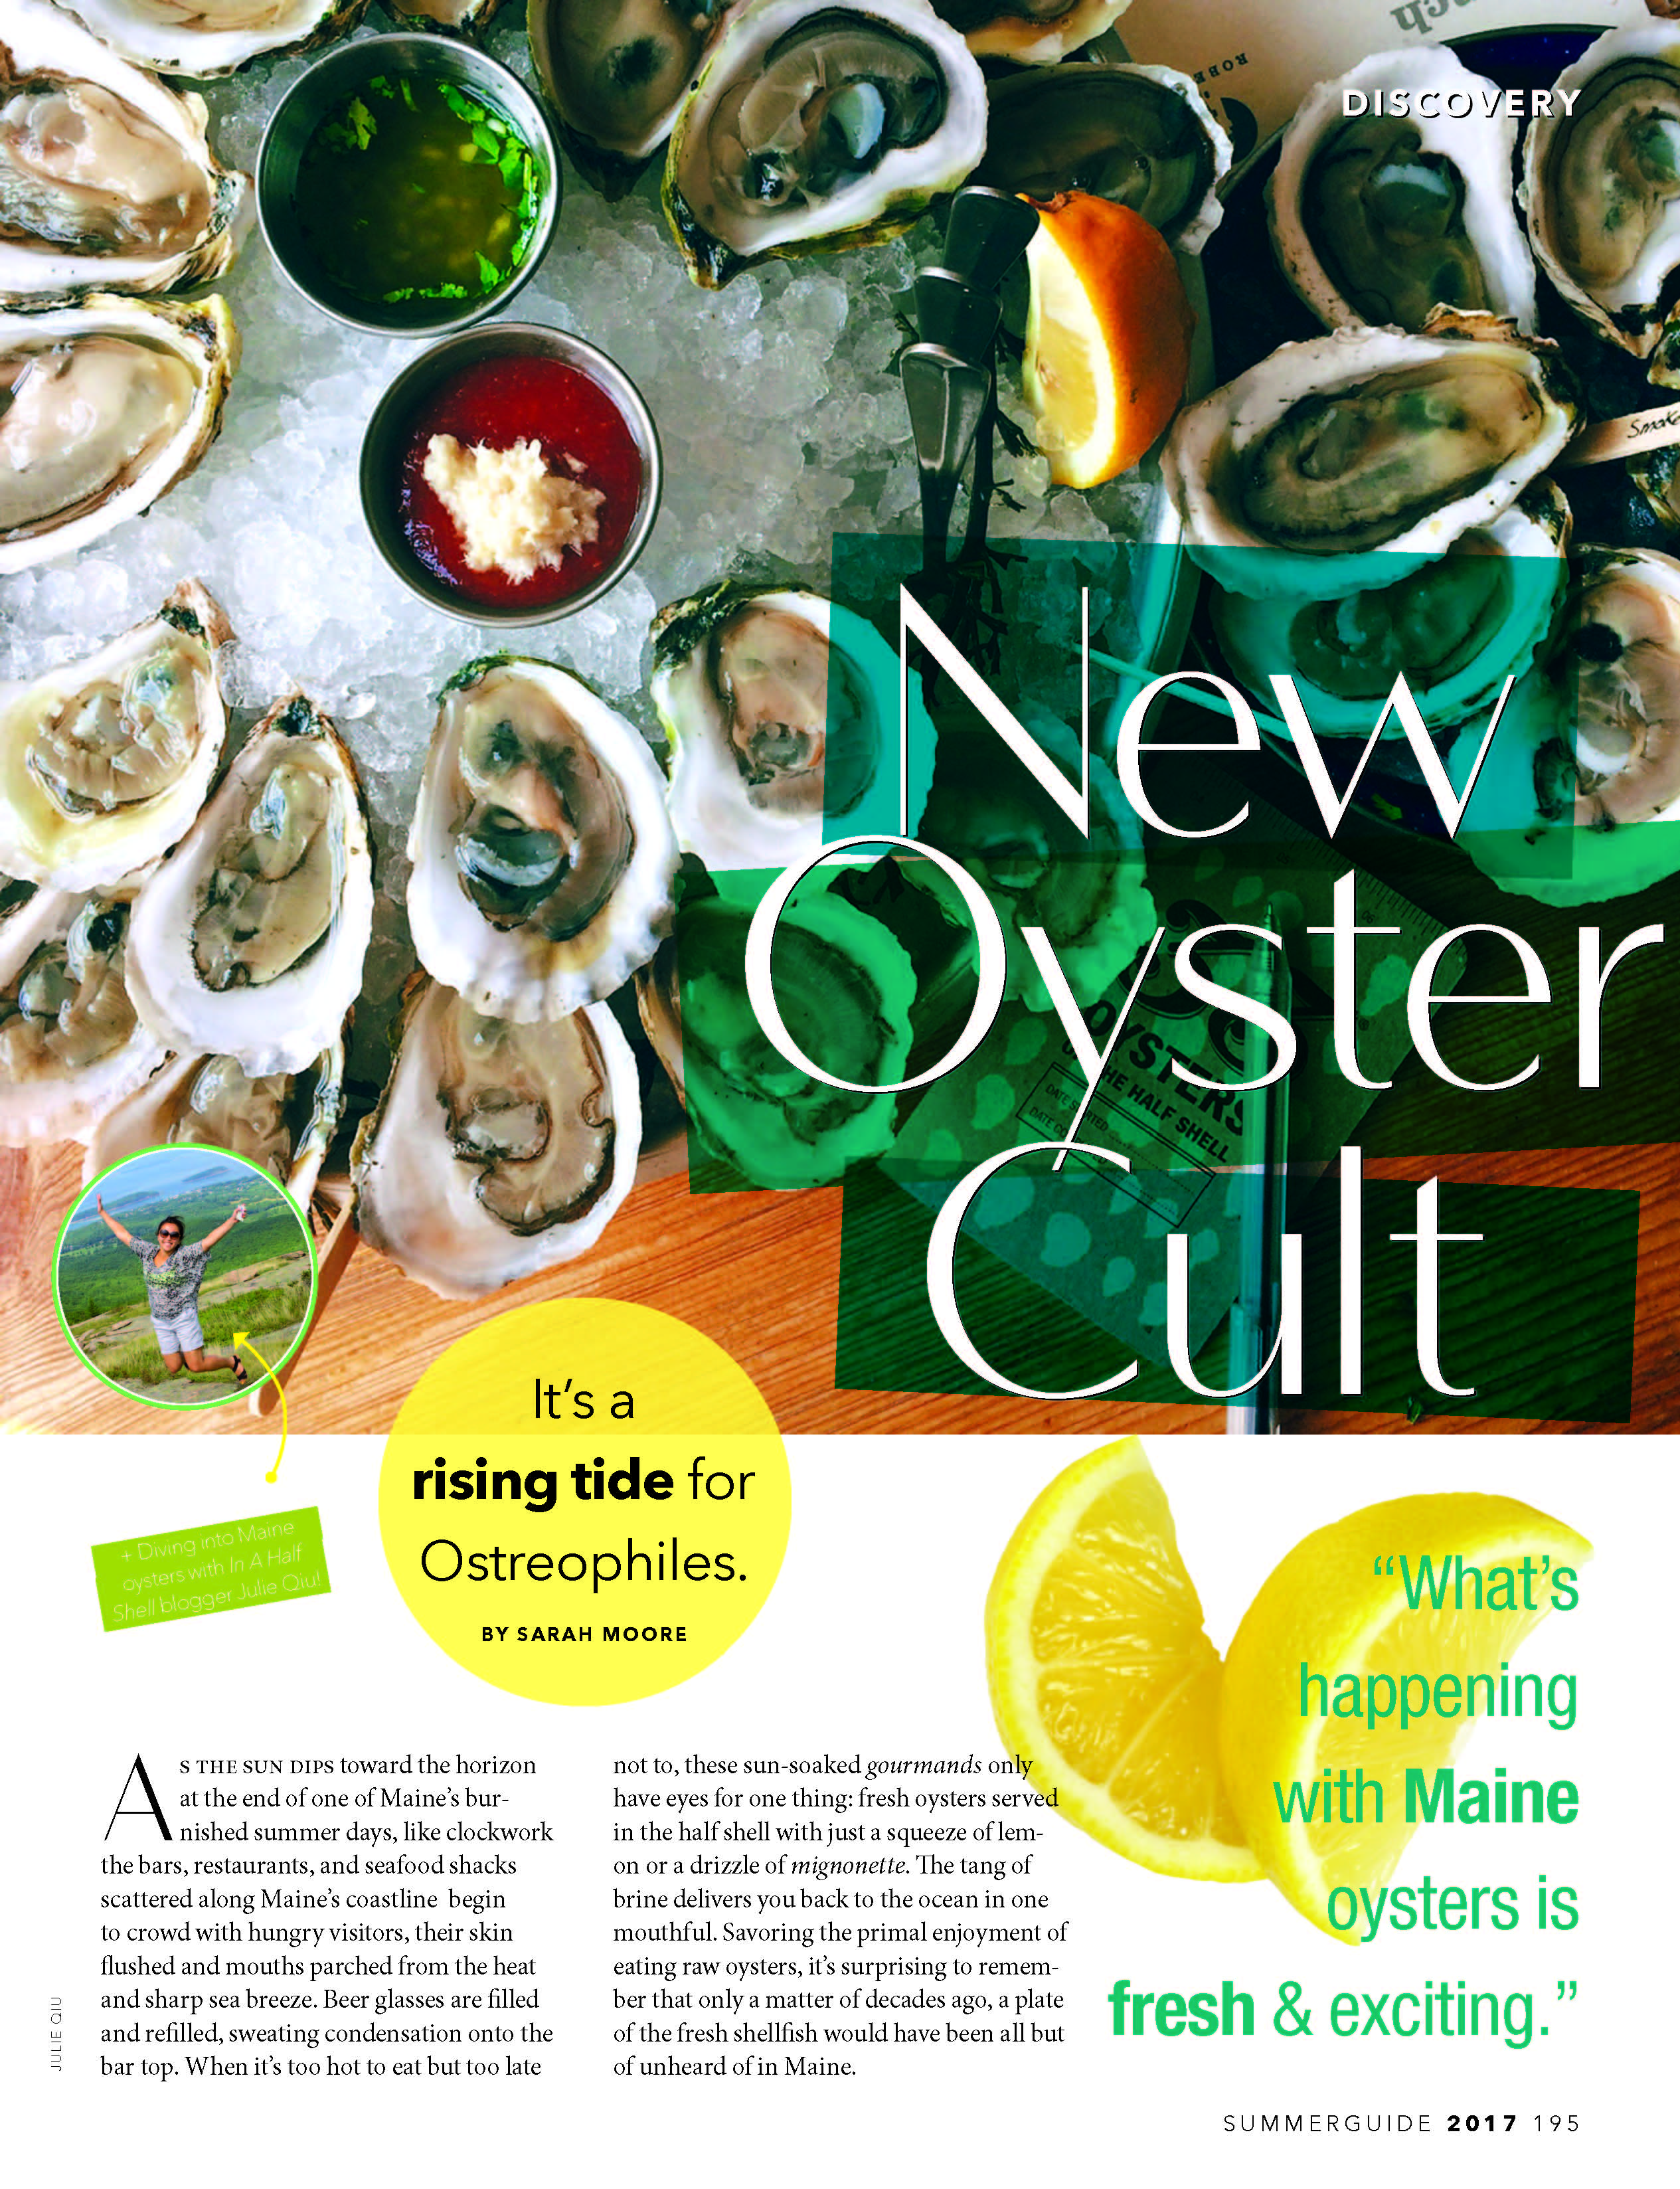 New Oyster Cult - Summerguide Feature 2017